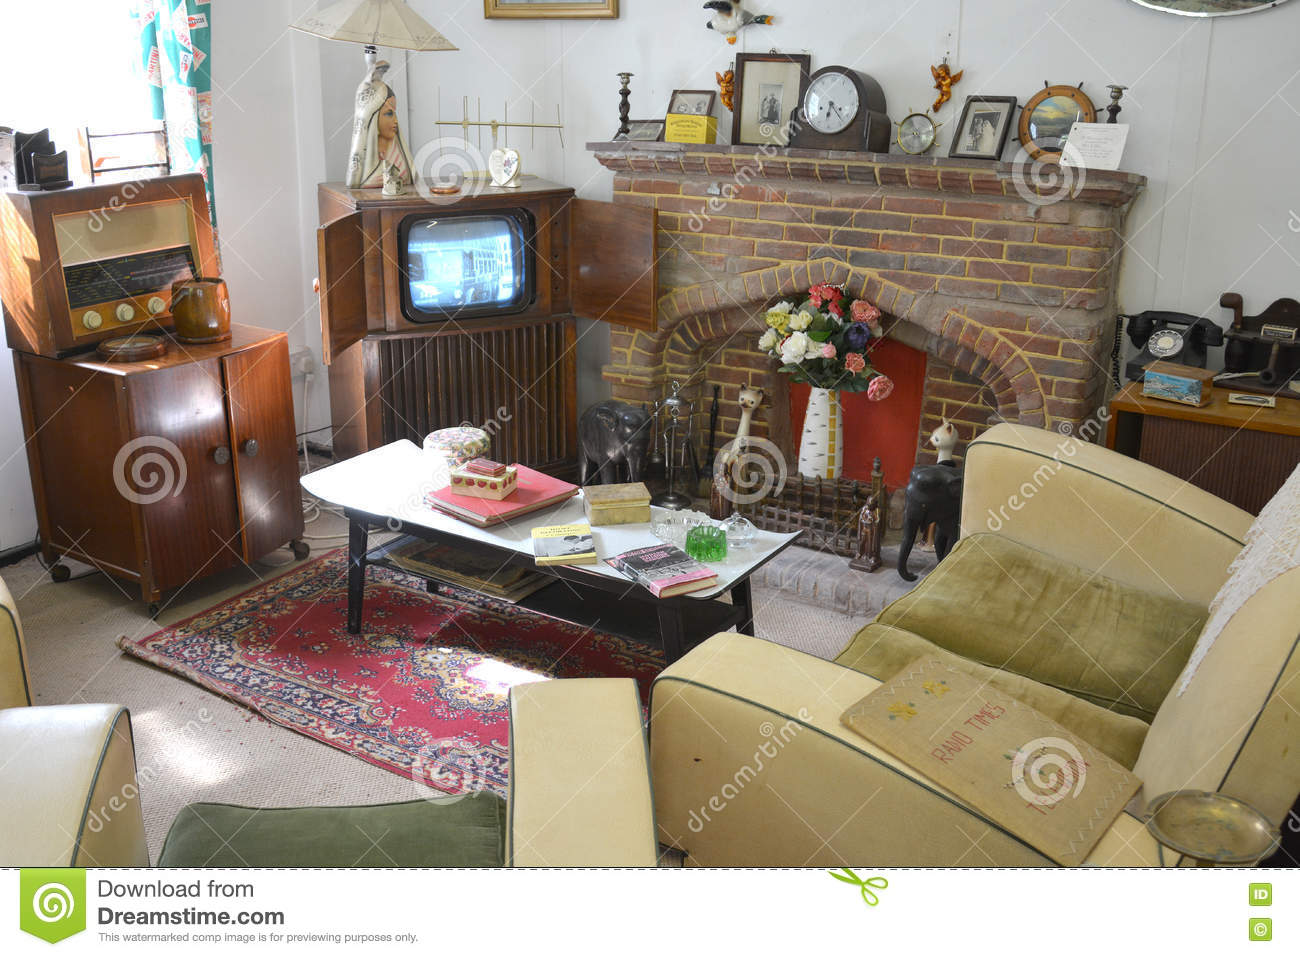 A 1940s 1950s living room with vintage furniture